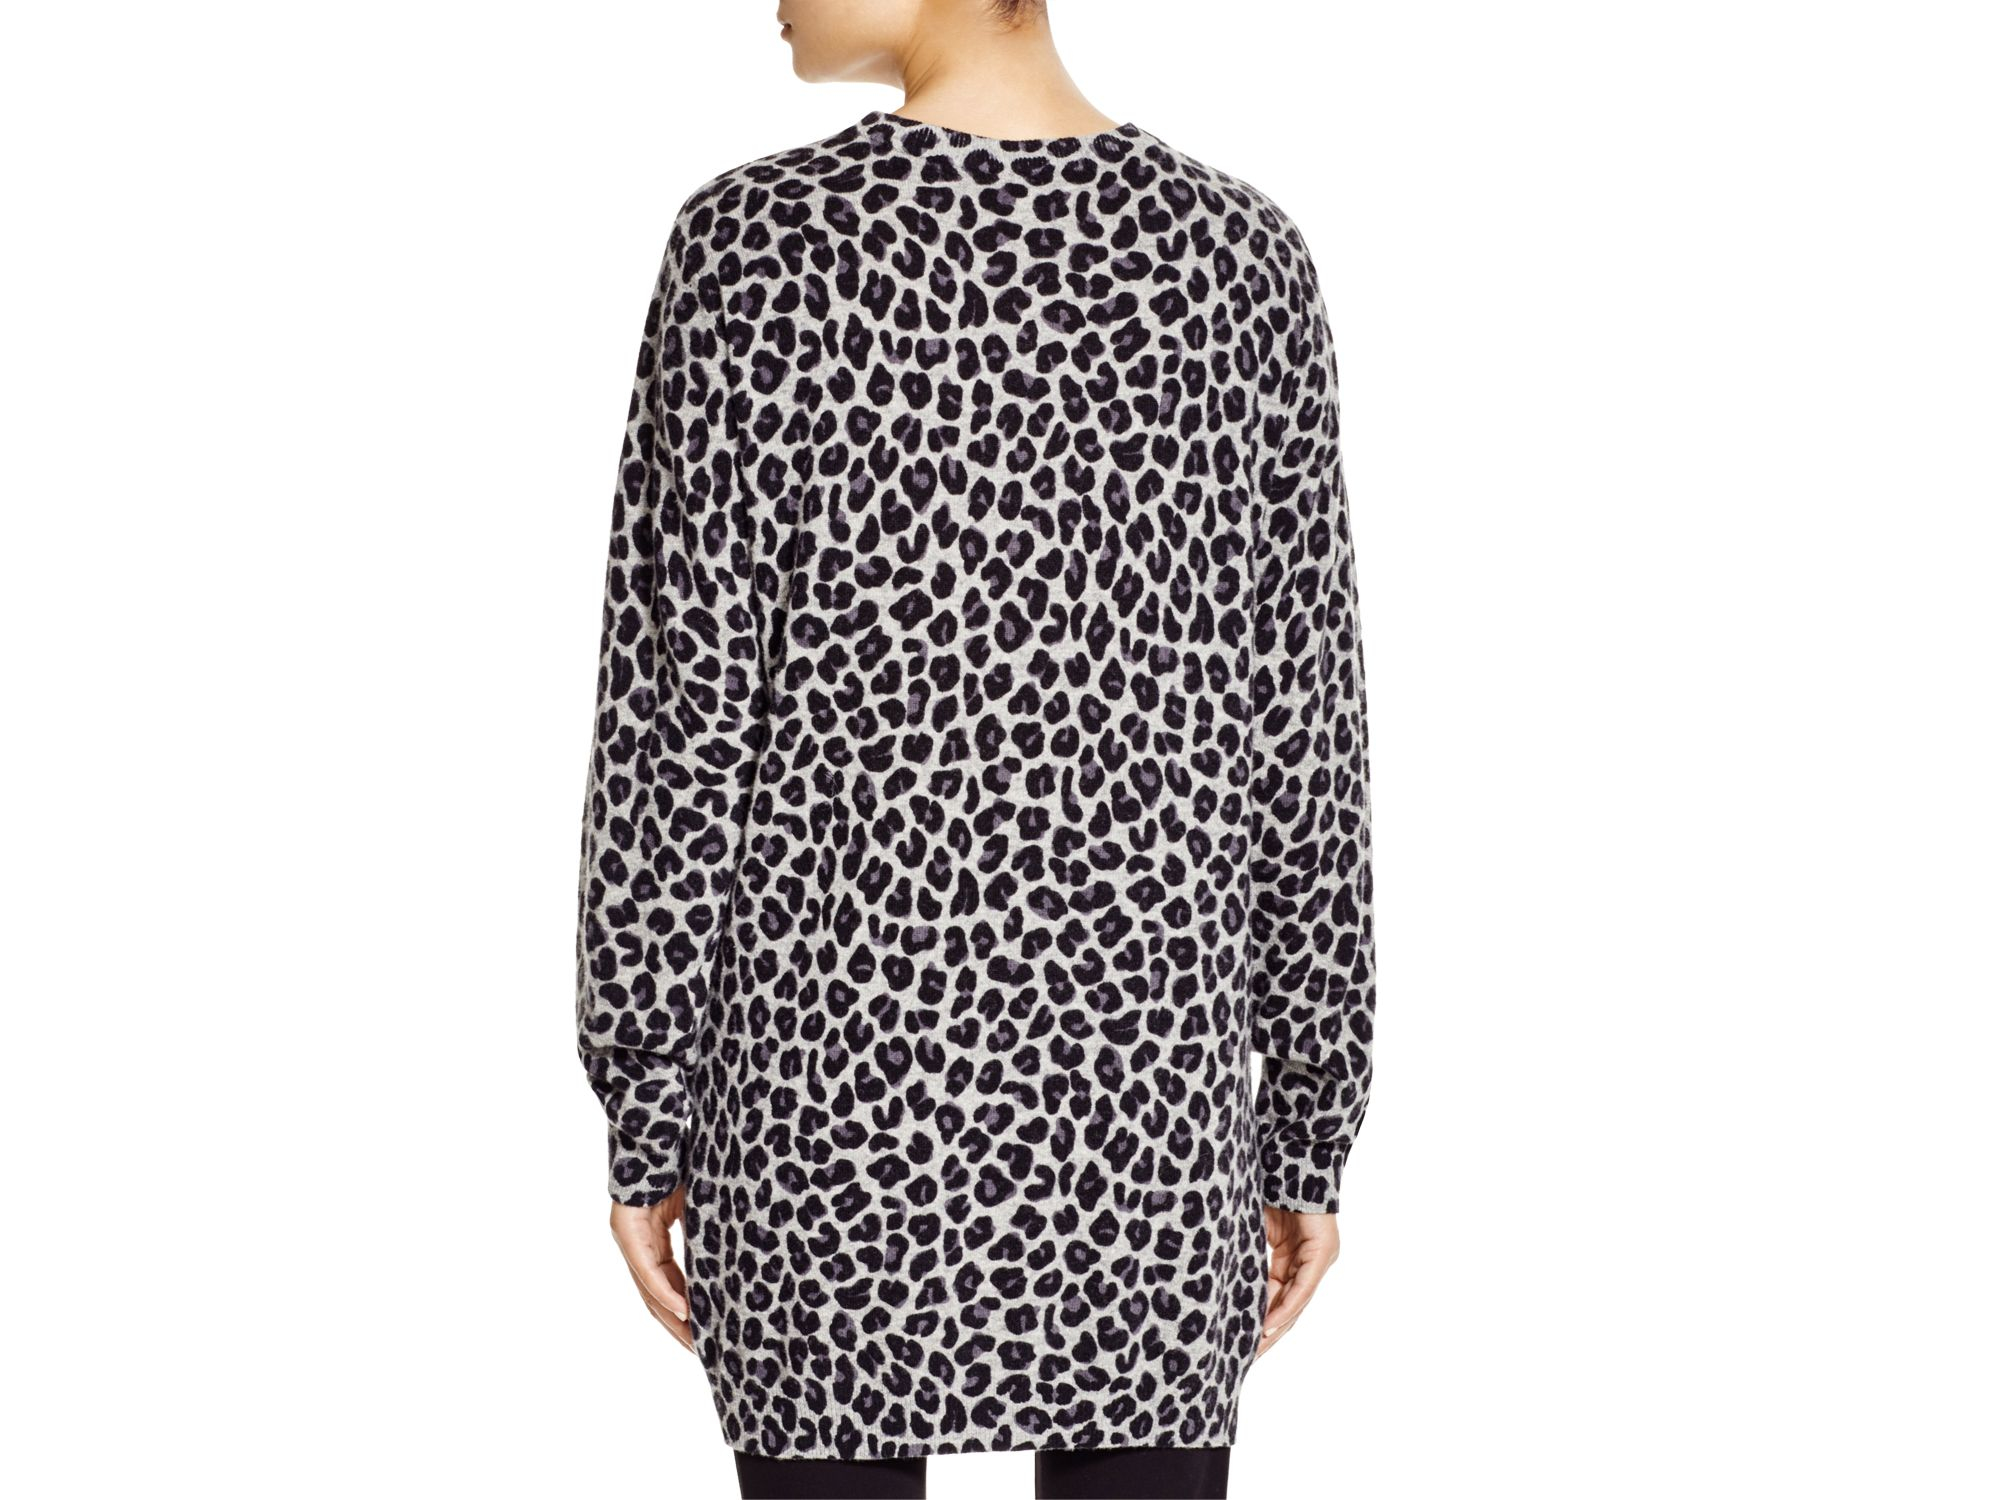 882876d20599 DKNY Leopard Print Sweater Dress - Bloomingdale's Exclusive in Gray ...